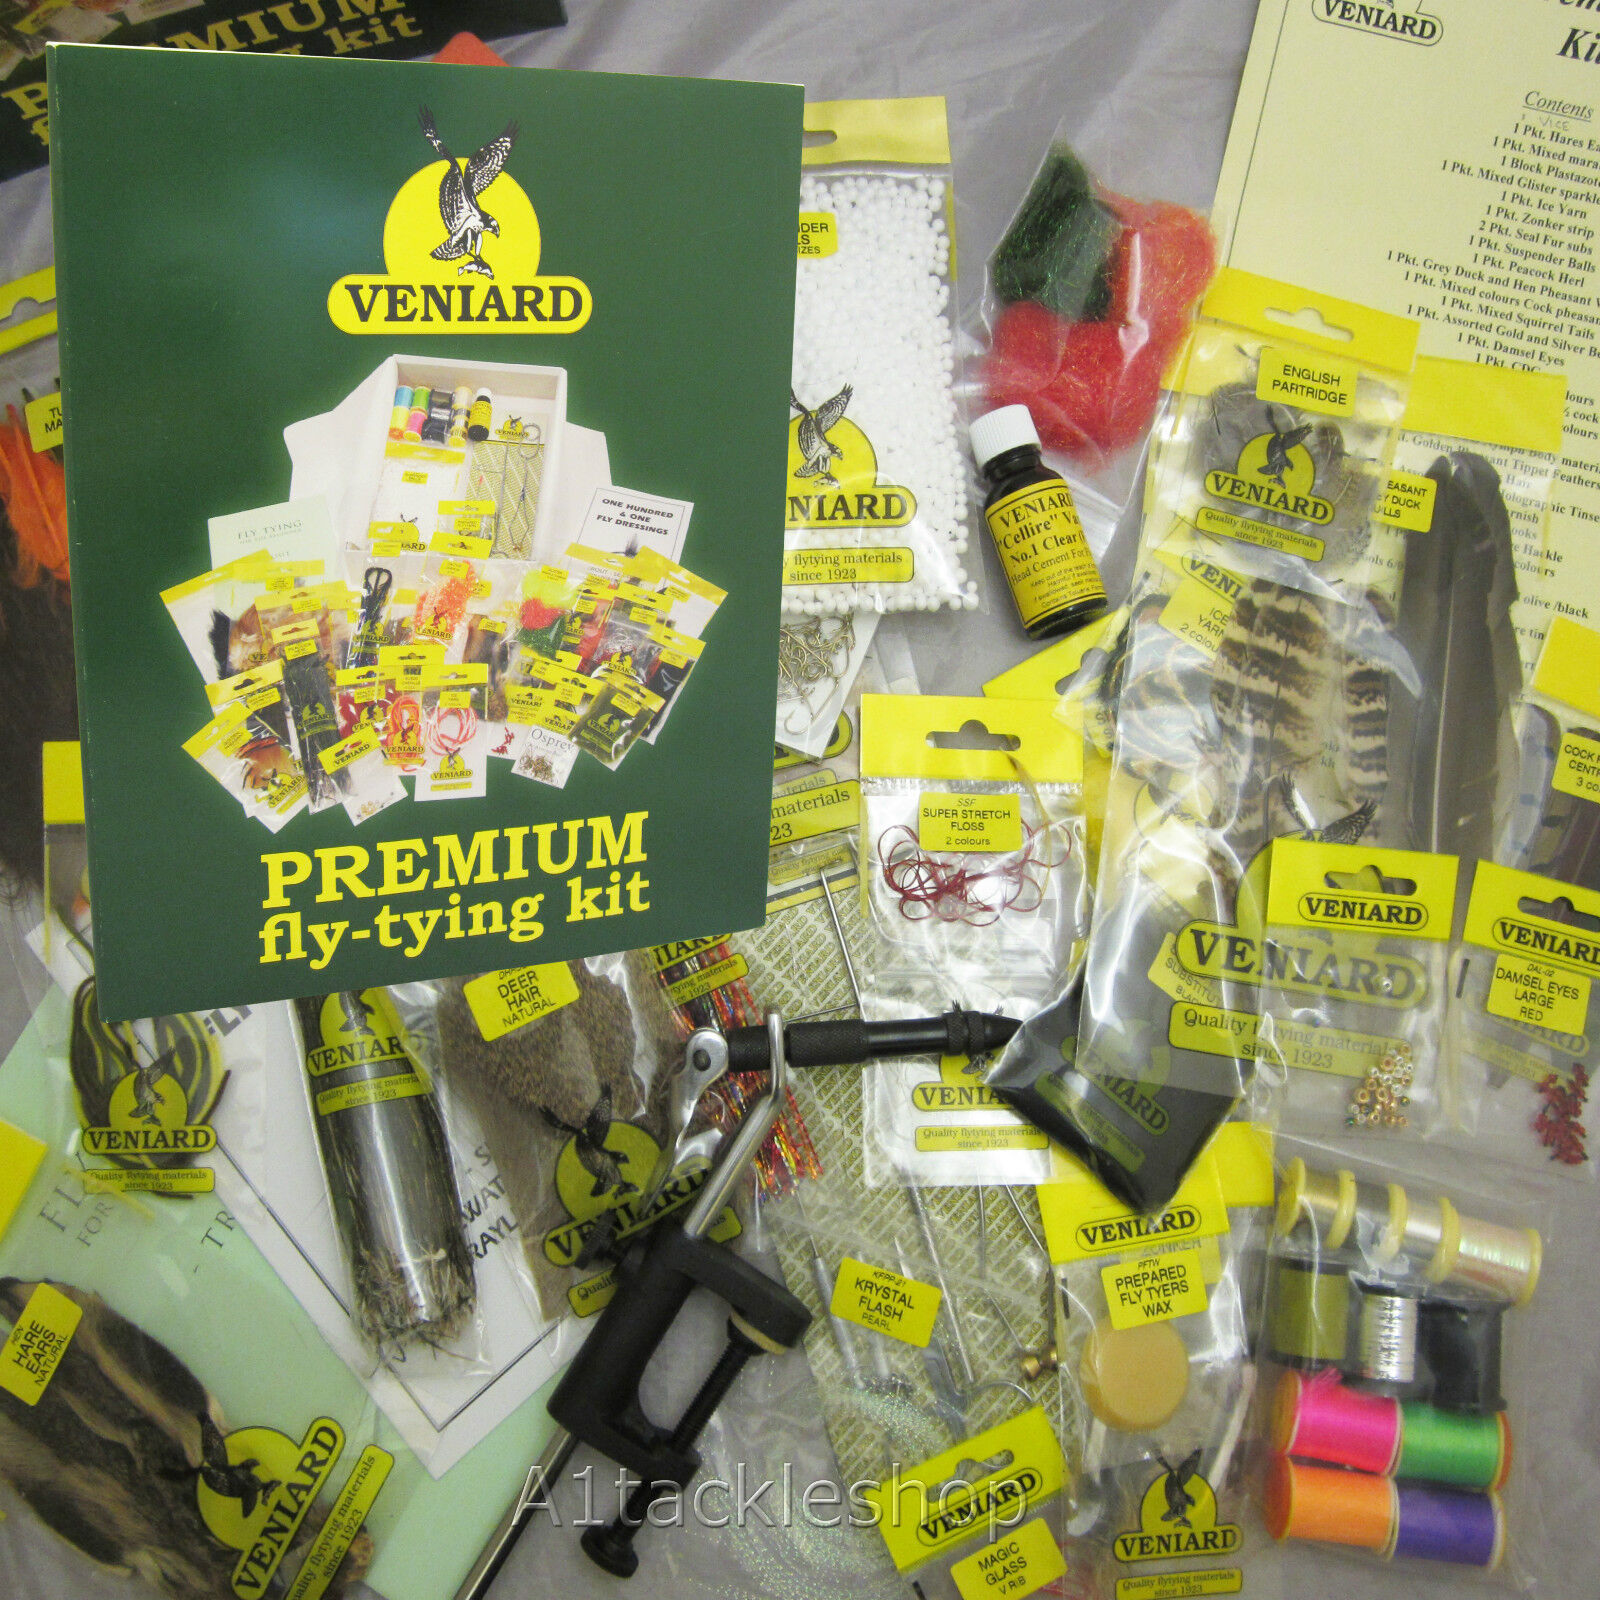 Veniard Premium Fly Tying Kit with Vice for Trout and Salmon Fishing Fly Making